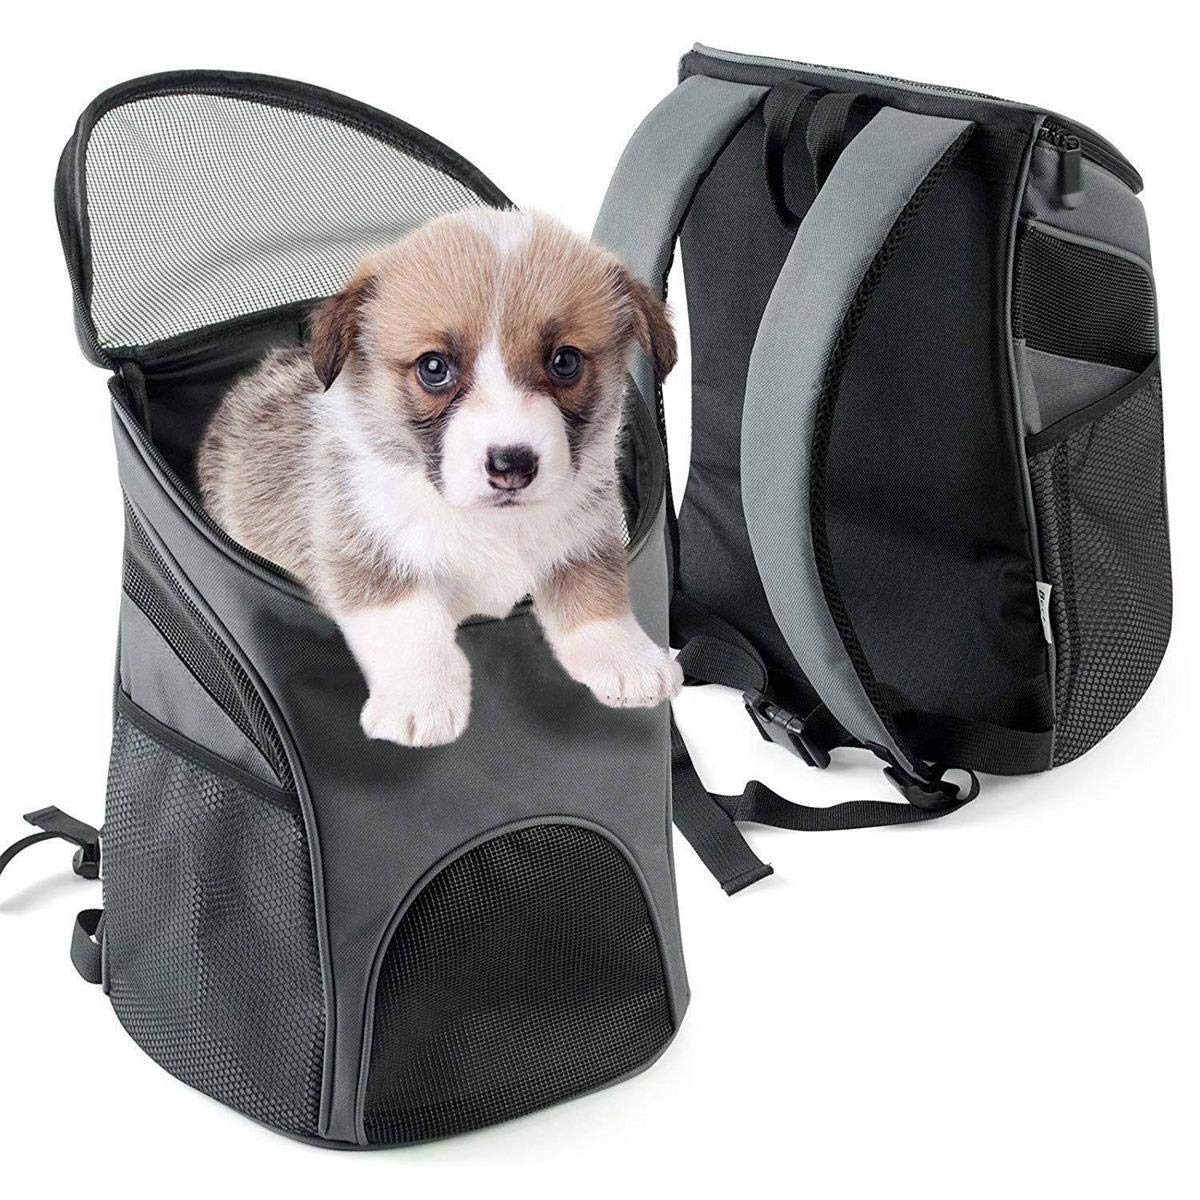 Foldable Pet Carrier Travel Handbag, Expandable Pet Carrier Bag Dog Cat Travel Carrier Bags with Padding and Extension